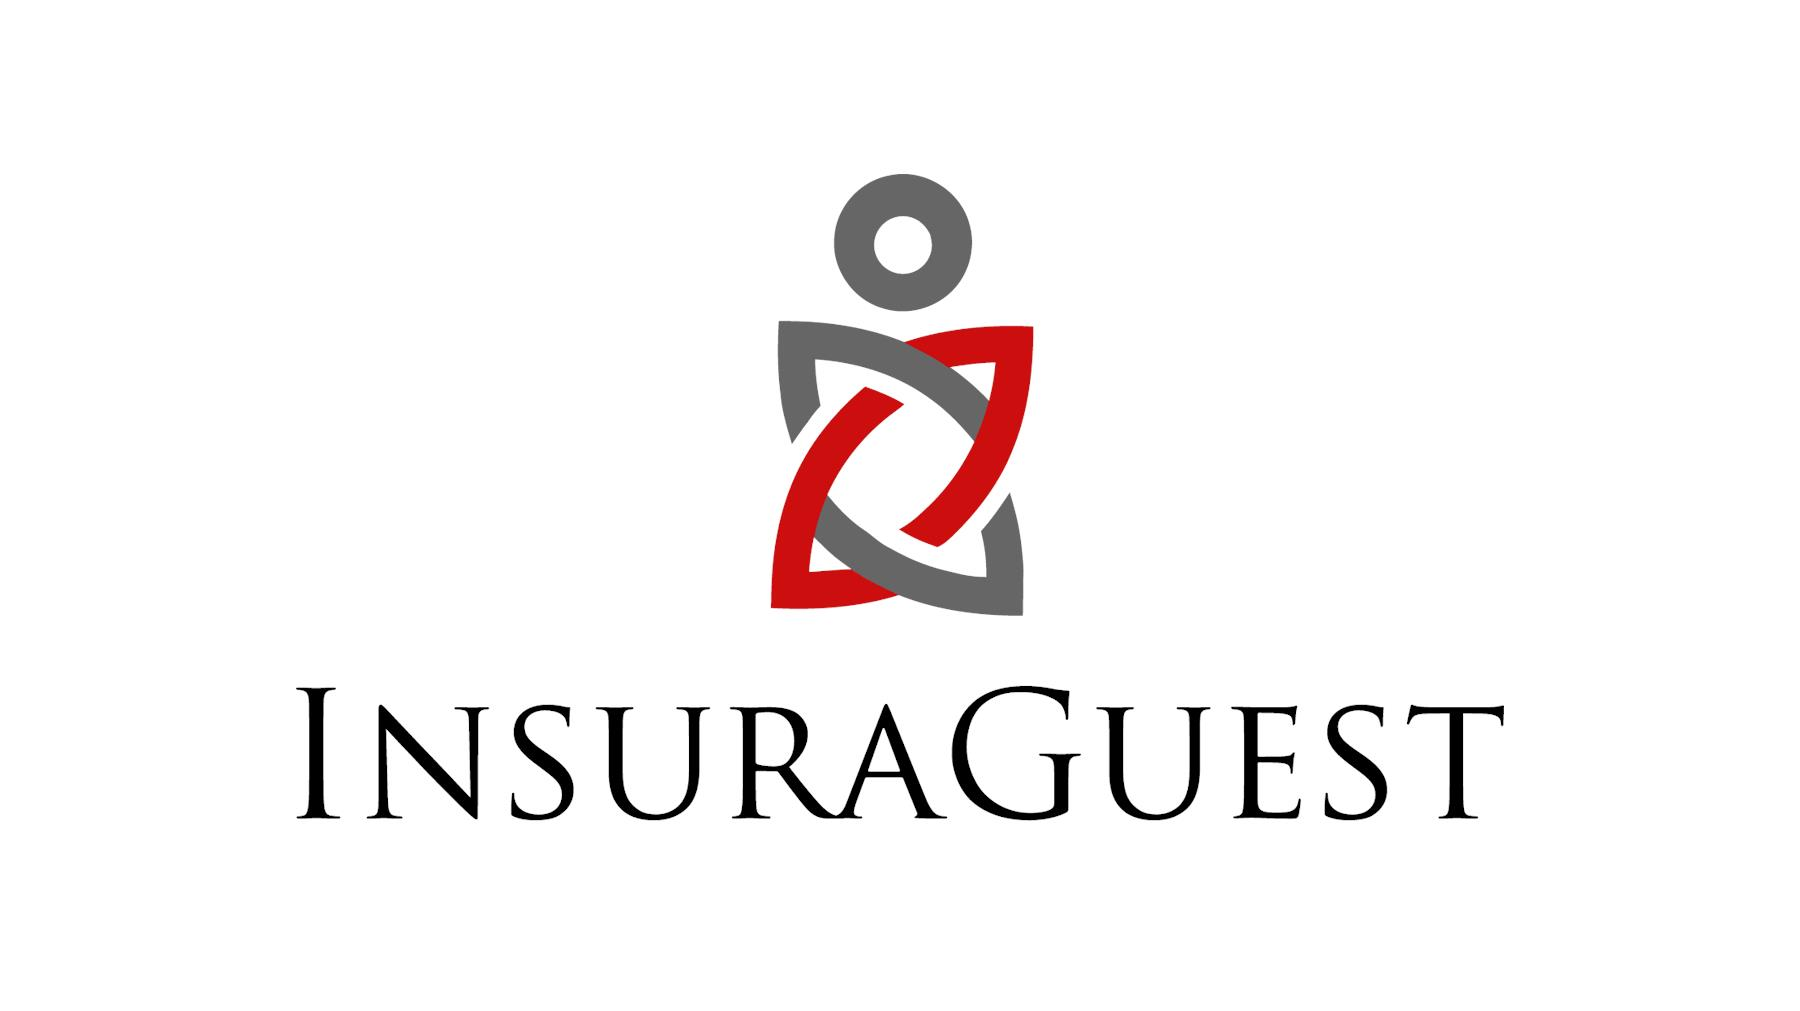 InsuraGuest Signs Vendor Agreement with Hostaway, A Leading Short-Term Rental Property Management Company